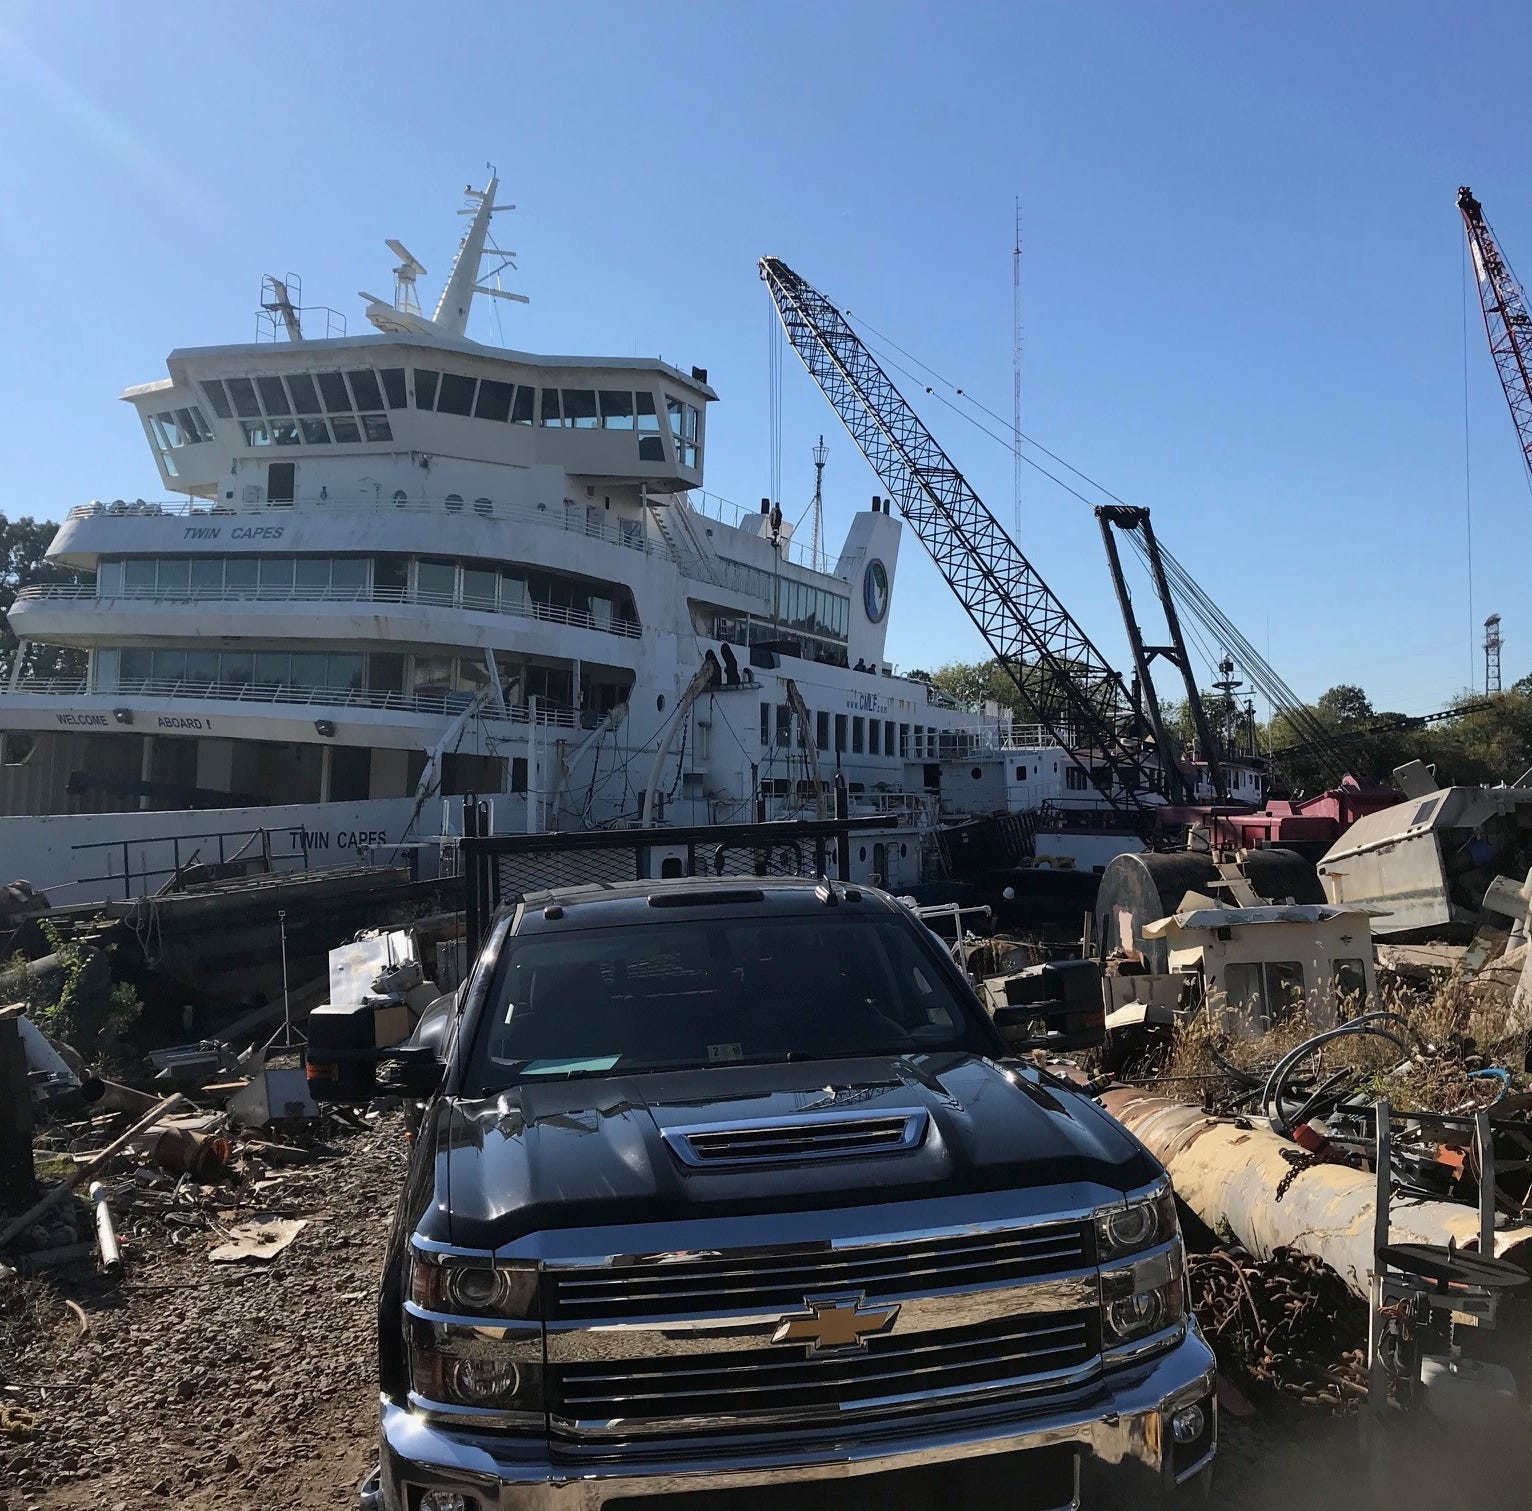 Salvaged items from sunken Cape May-Lewes Ferry featured on Sunday night show